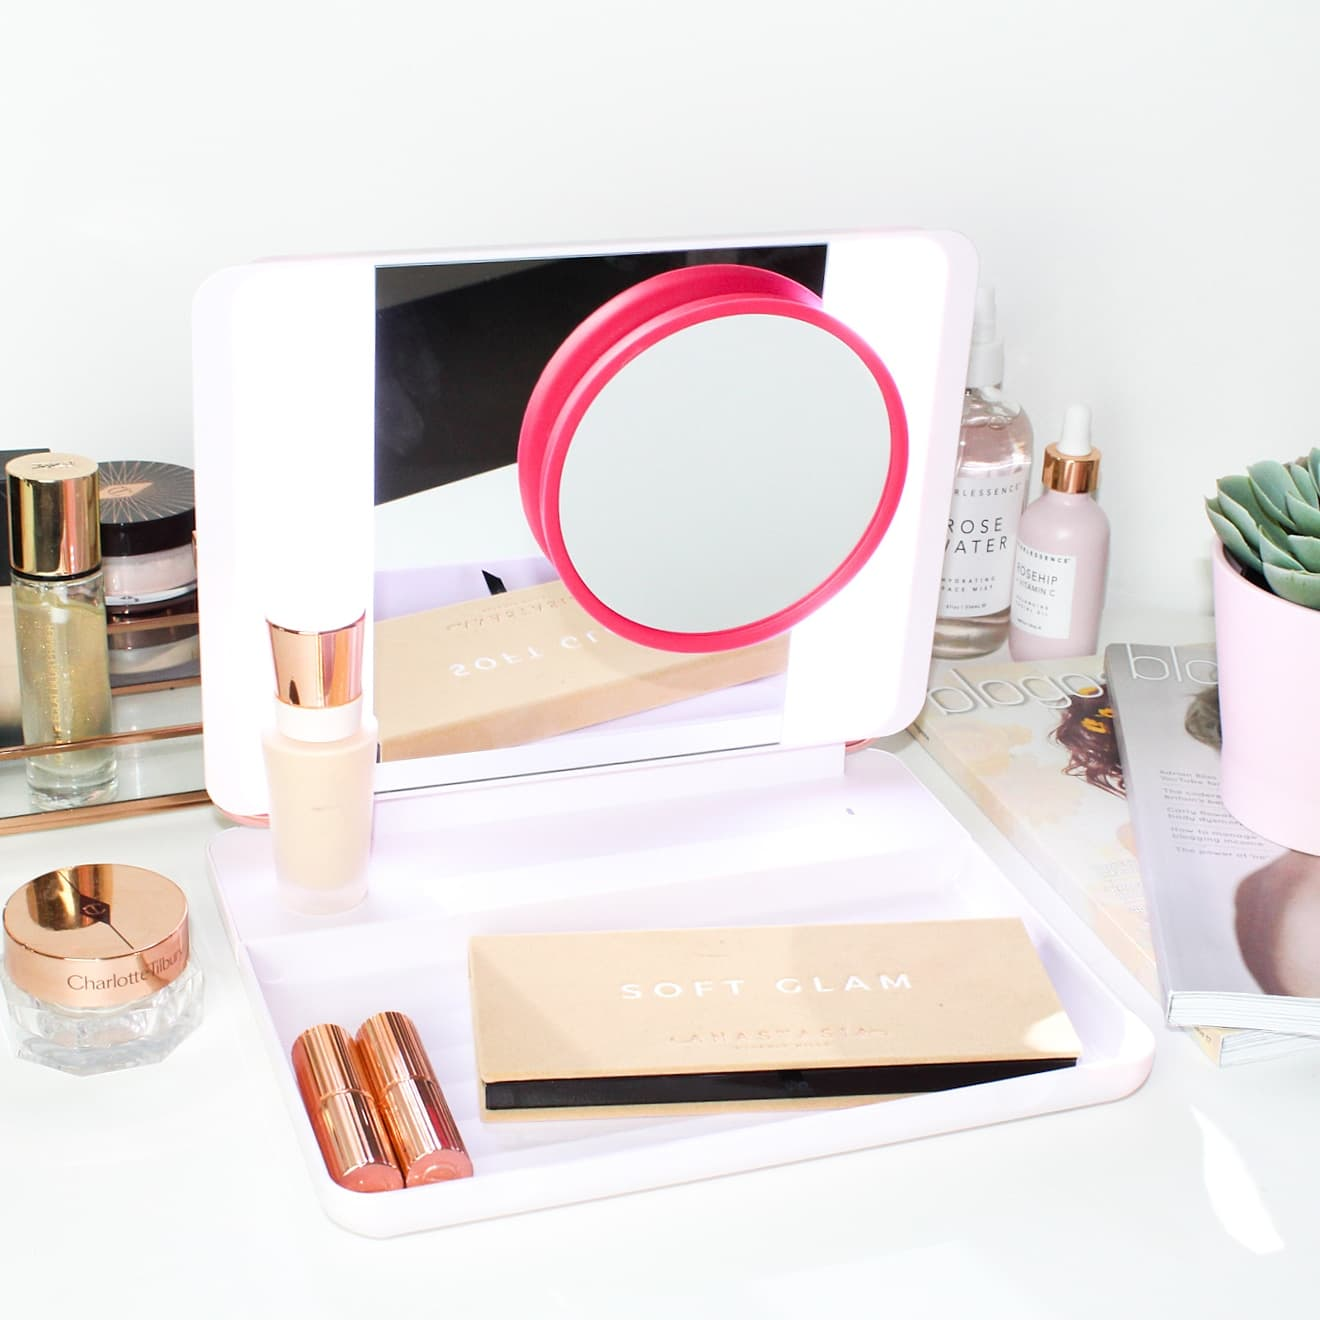 Perfect Makeup Every Time with the Spotlite HDDiamond 2.0 by Just Own It*